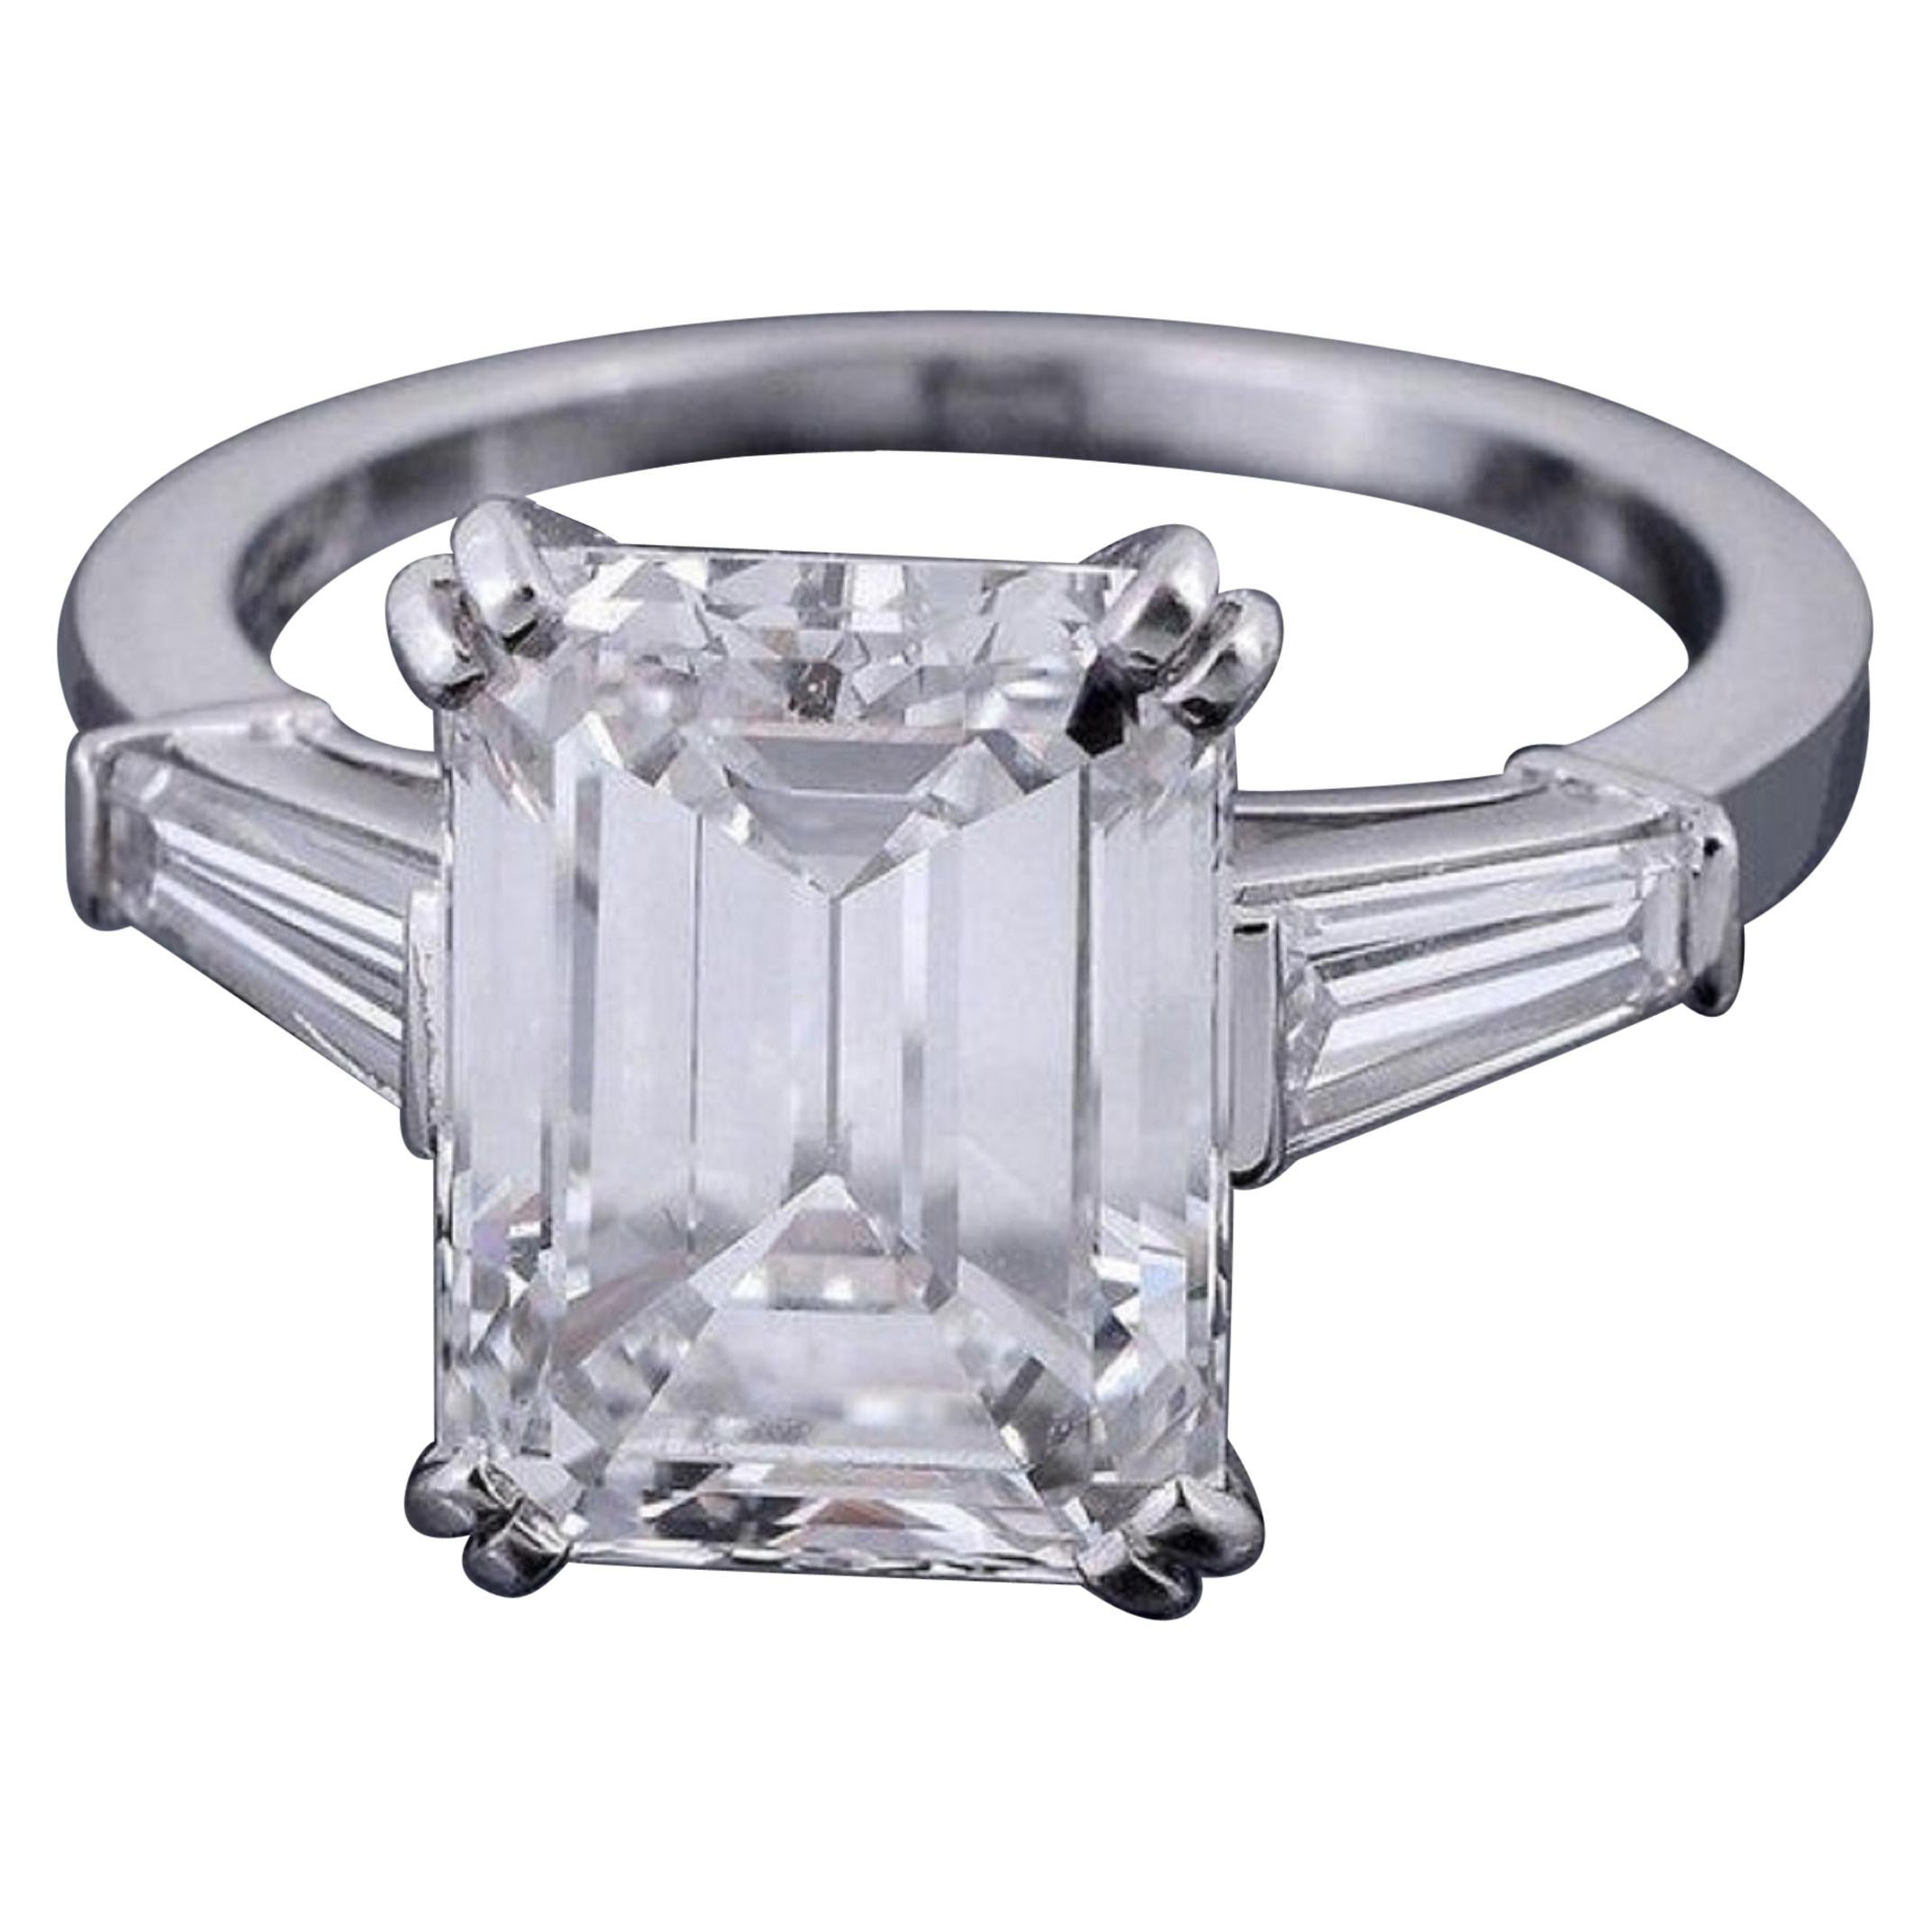 I Flawless D Color GIA Certified 5.65 Carat Emerald Cut Diamond Ring